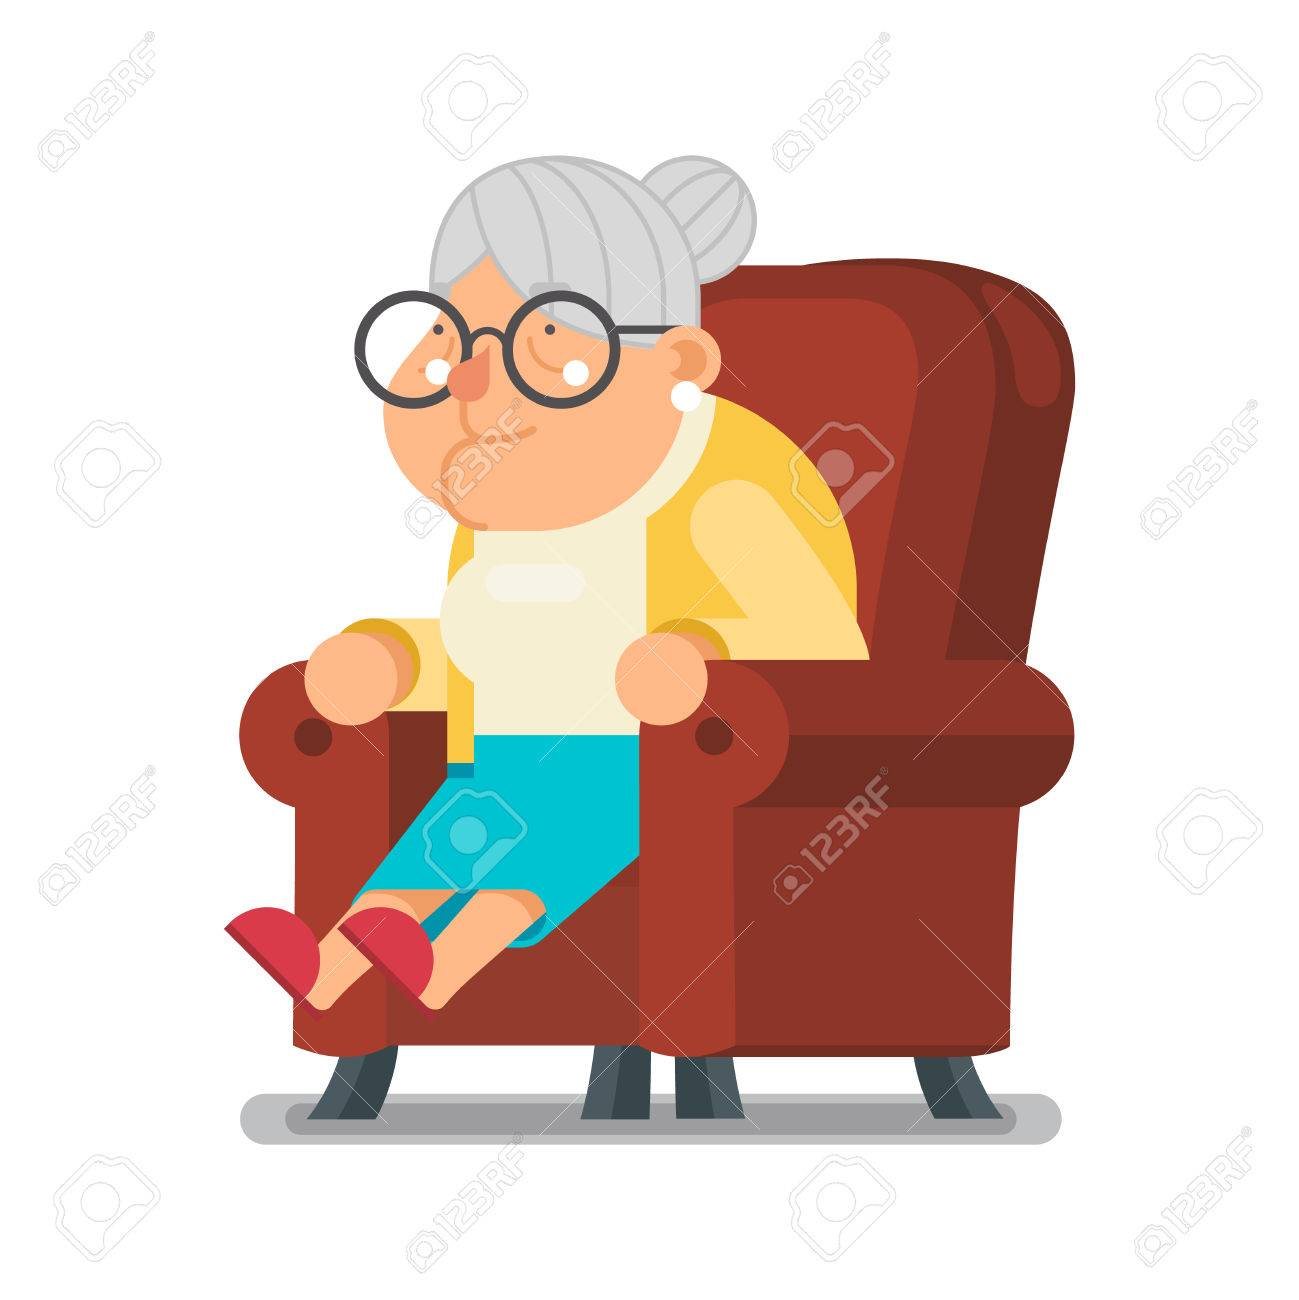 sit rest granny old lady character cartoon flat vector illustration